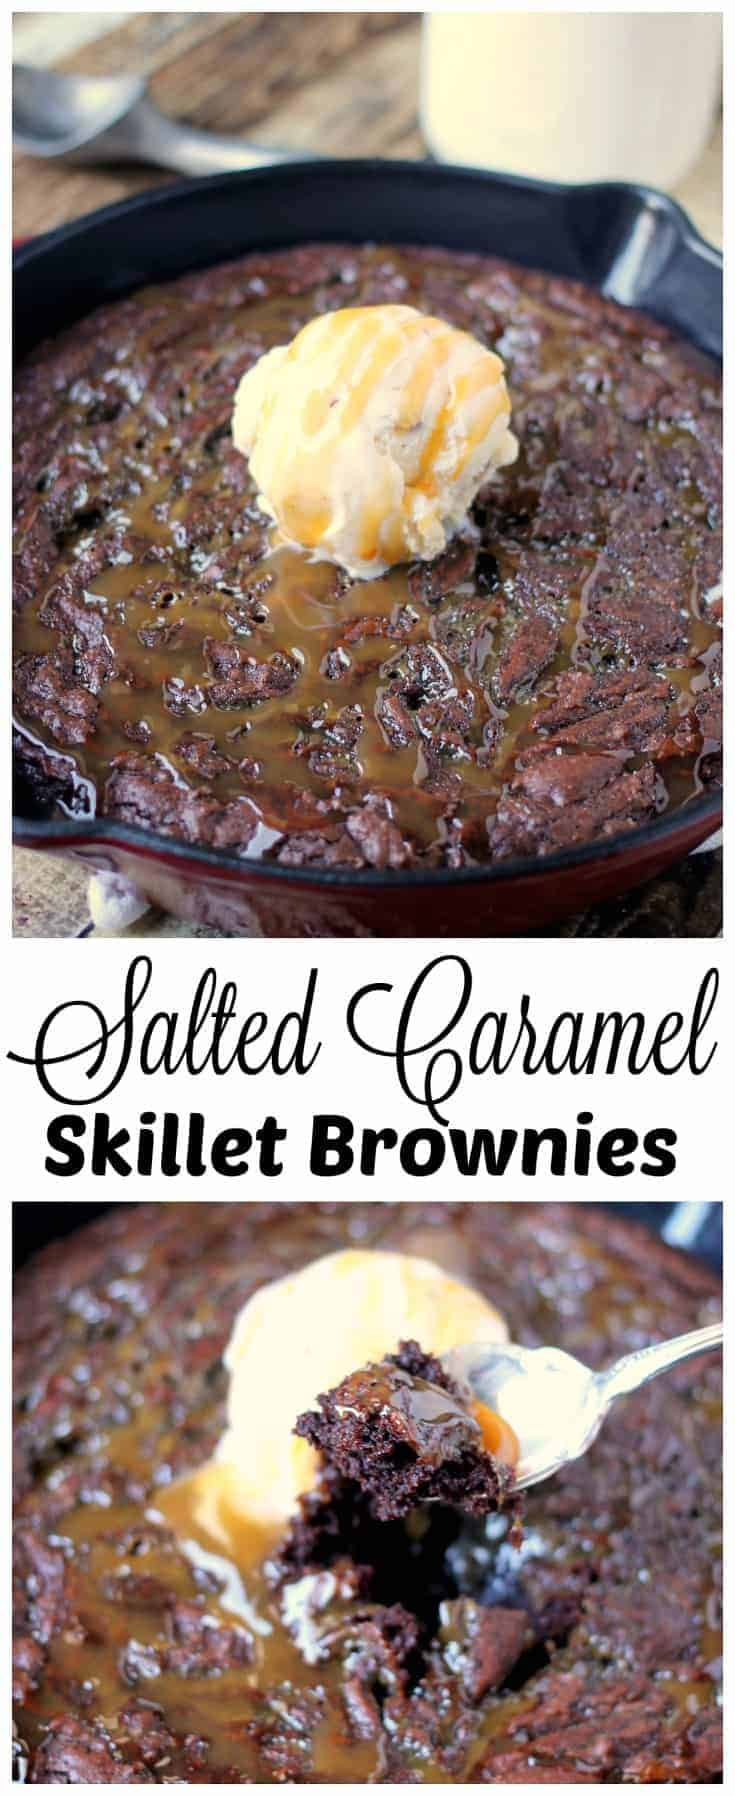 These SALTED CARAMEL SKILLET BROWNIES are sweet and salty, crisp and soft, warm and cold. Opposing tastes and textures truly make this epic dessert recipe. #saltedcaramel #skilletbrownies #brownies #brownierecipe